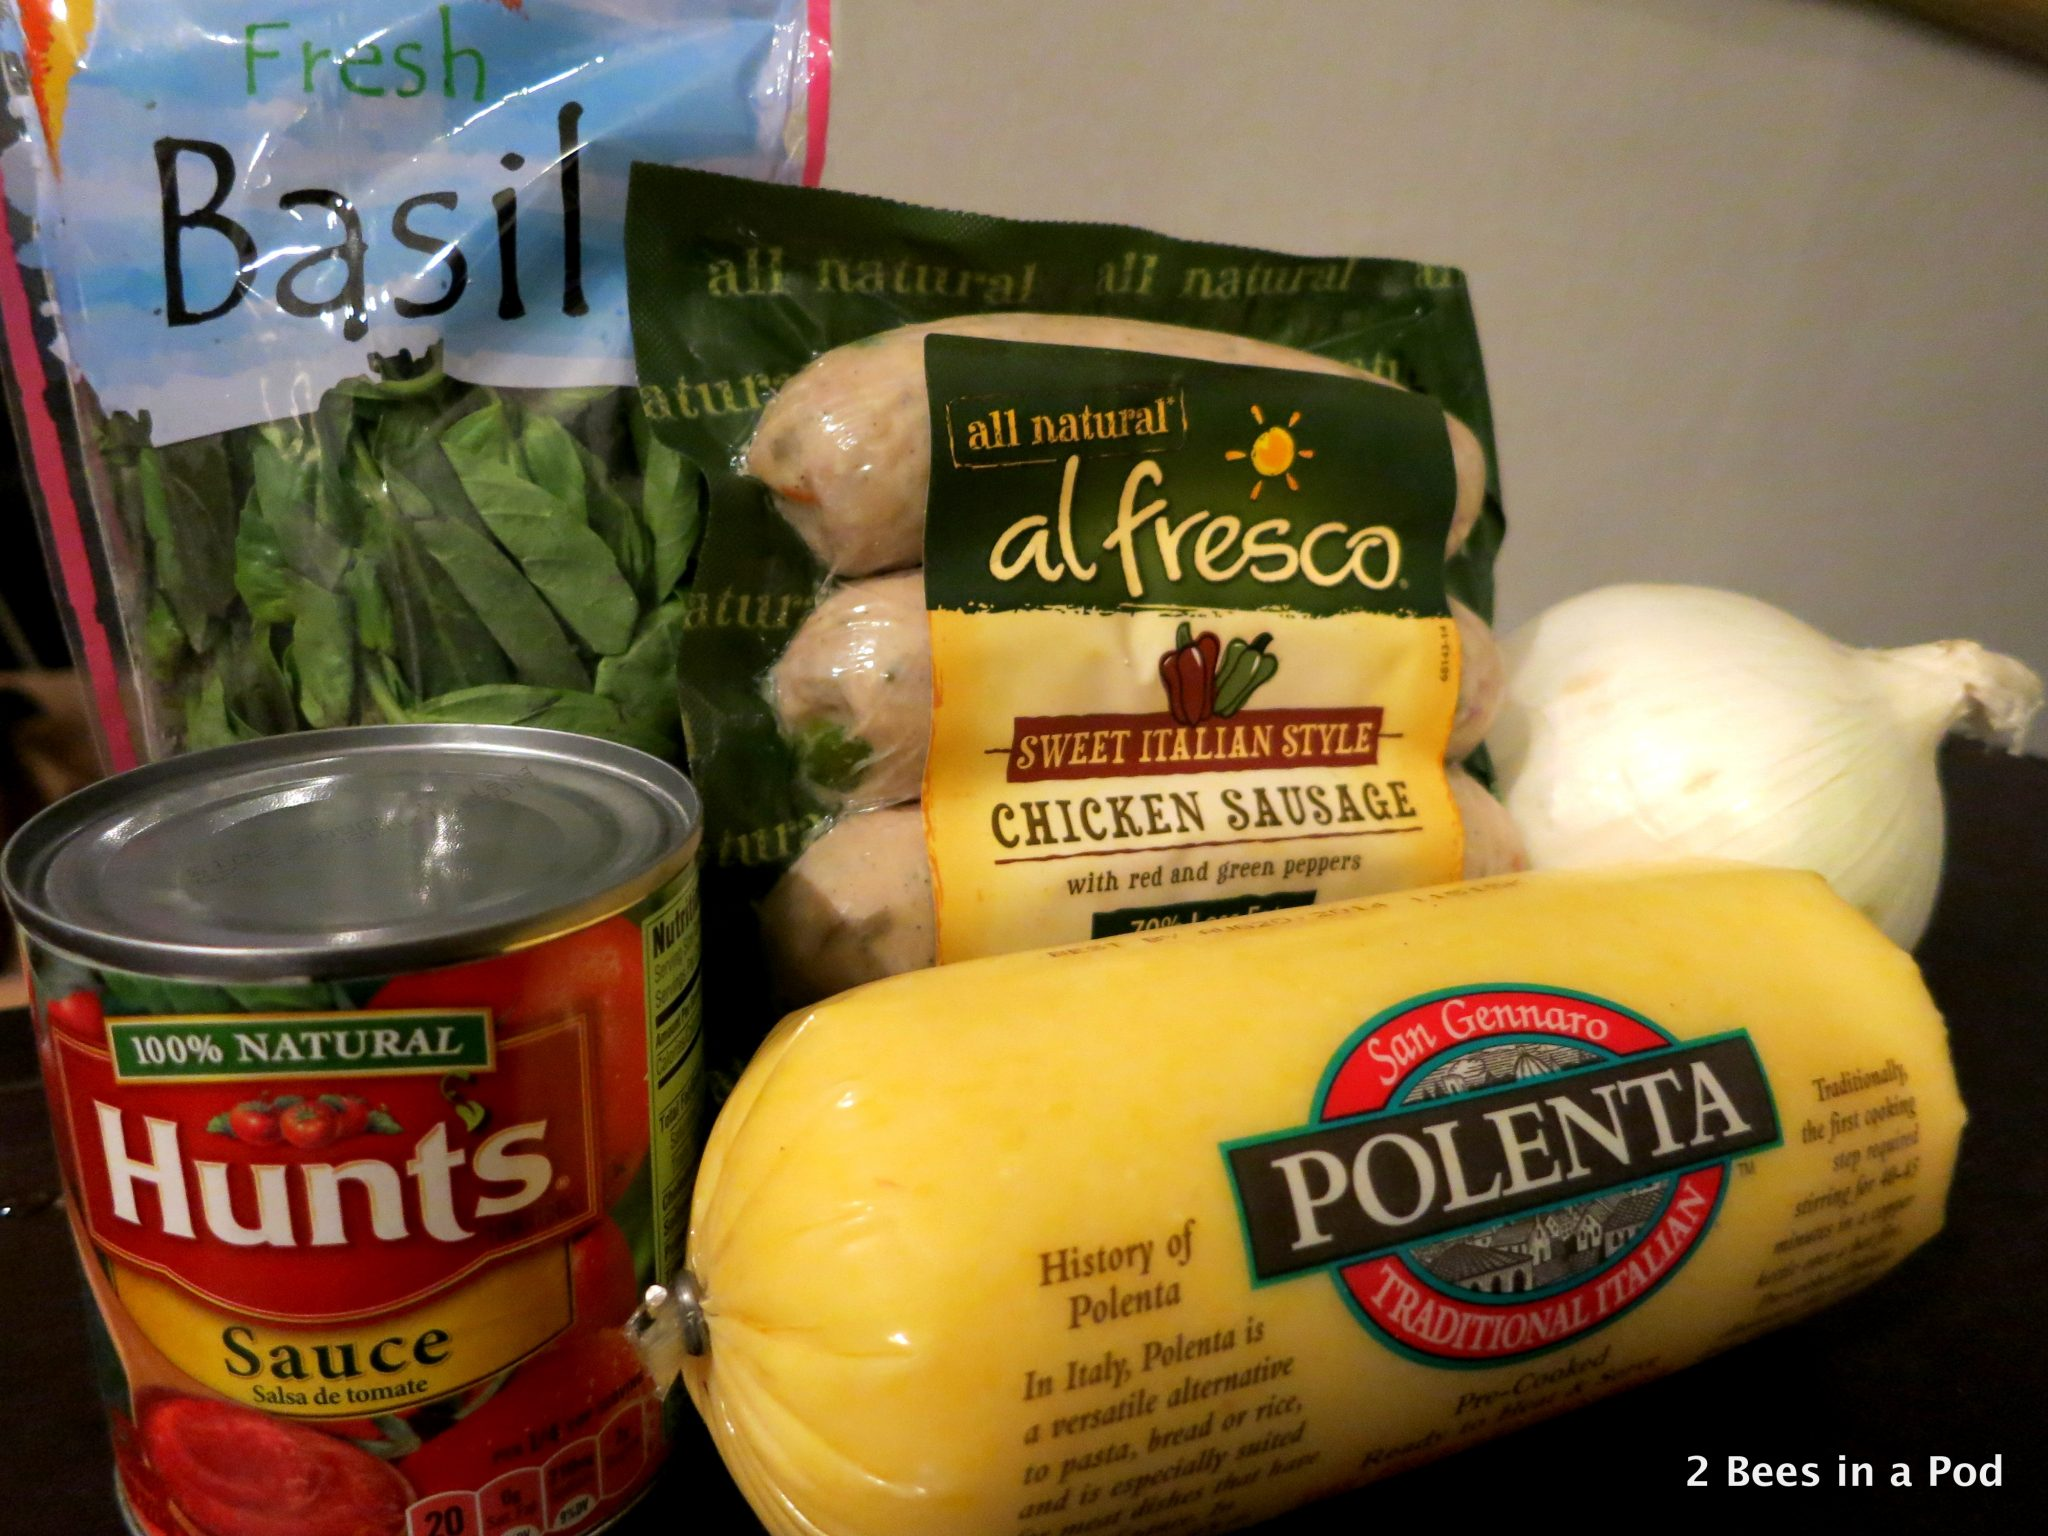 Ingredients for Polenta & Sausage - Weight Watchers Recipe